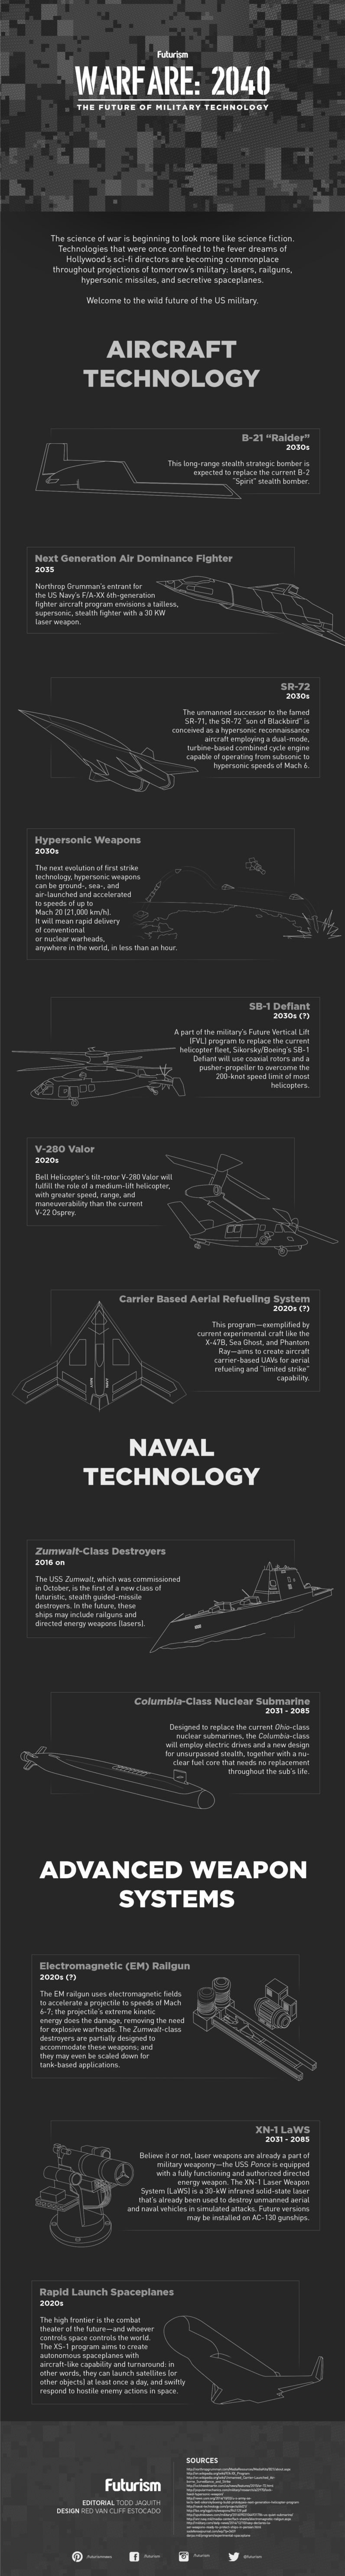 The Future of Military Technology is Intense